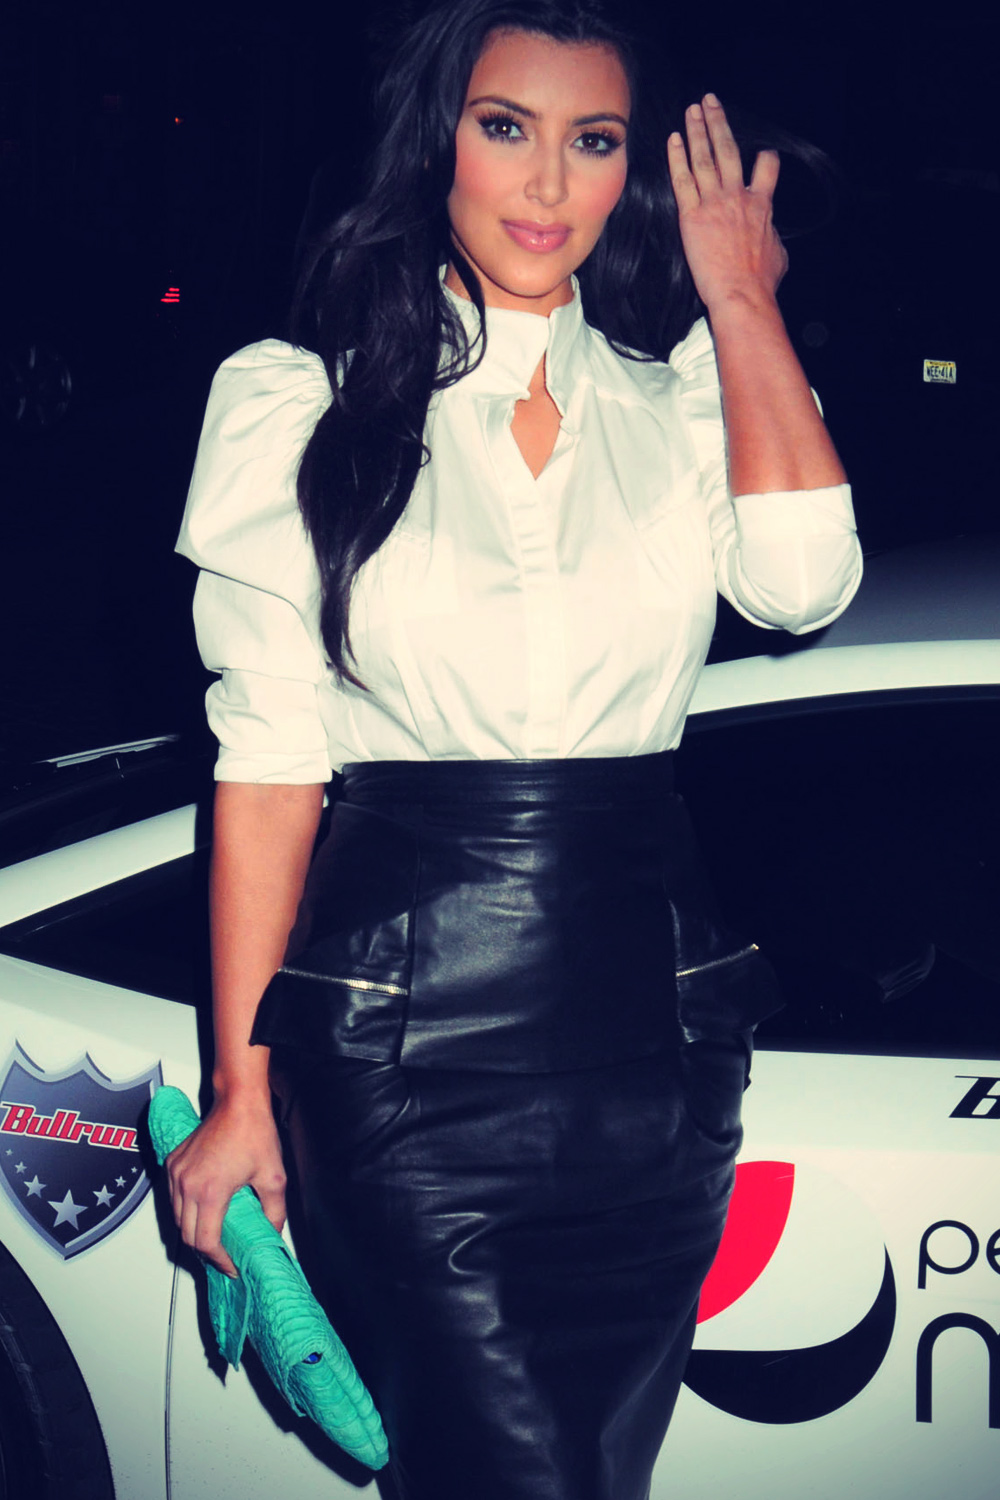 Kim Kardashian at Pepsi Bullrun launch party